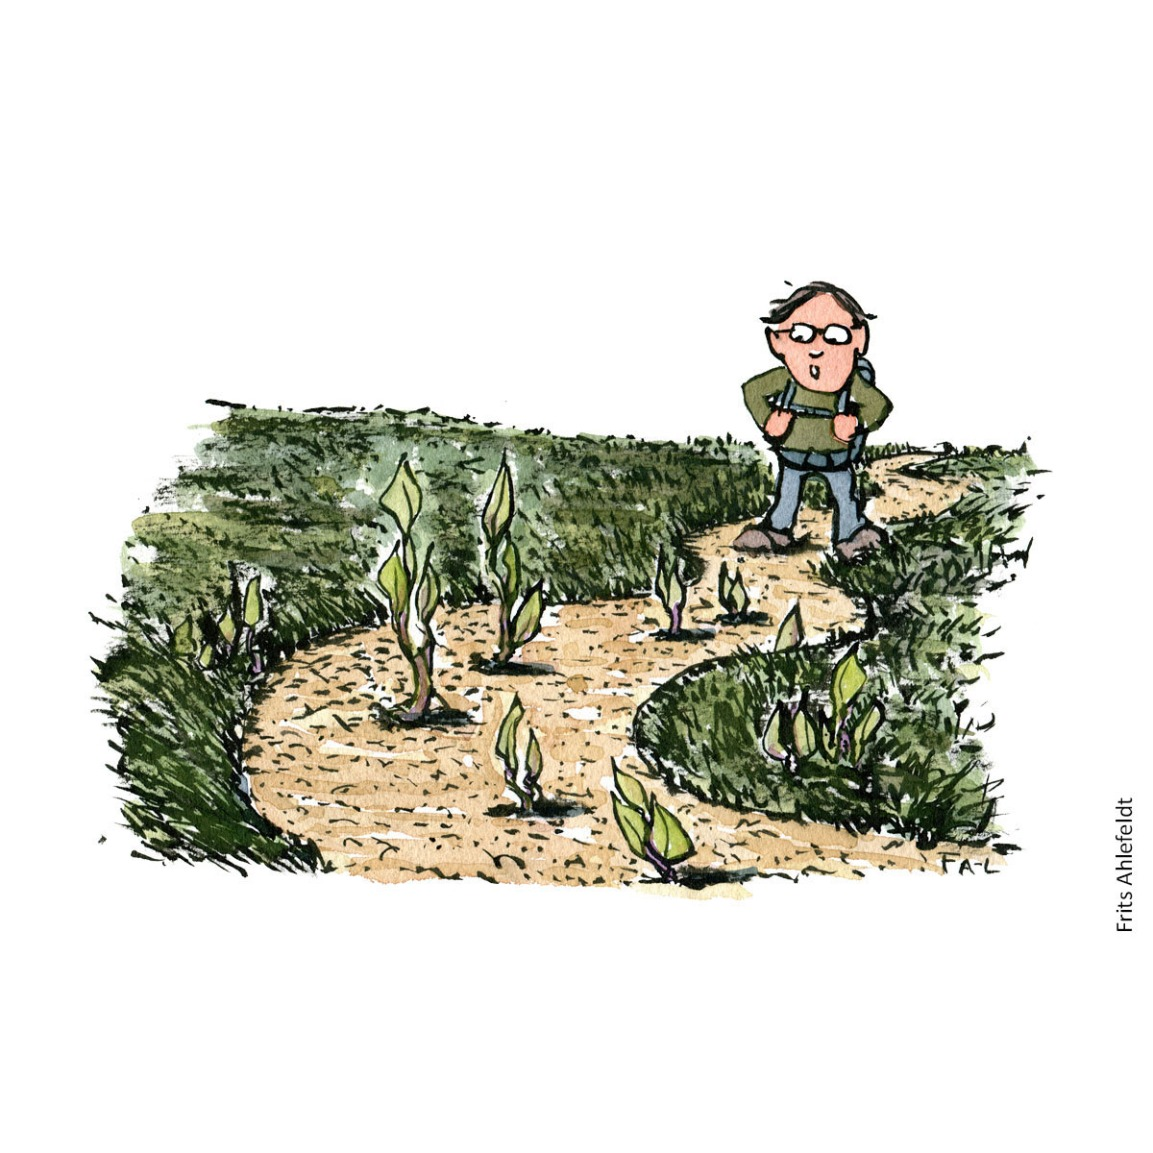 Hiker looking at trail damage by invasive species along trail ( japanese knotweed) Hiking Illustration by Frits Ahlefeldt